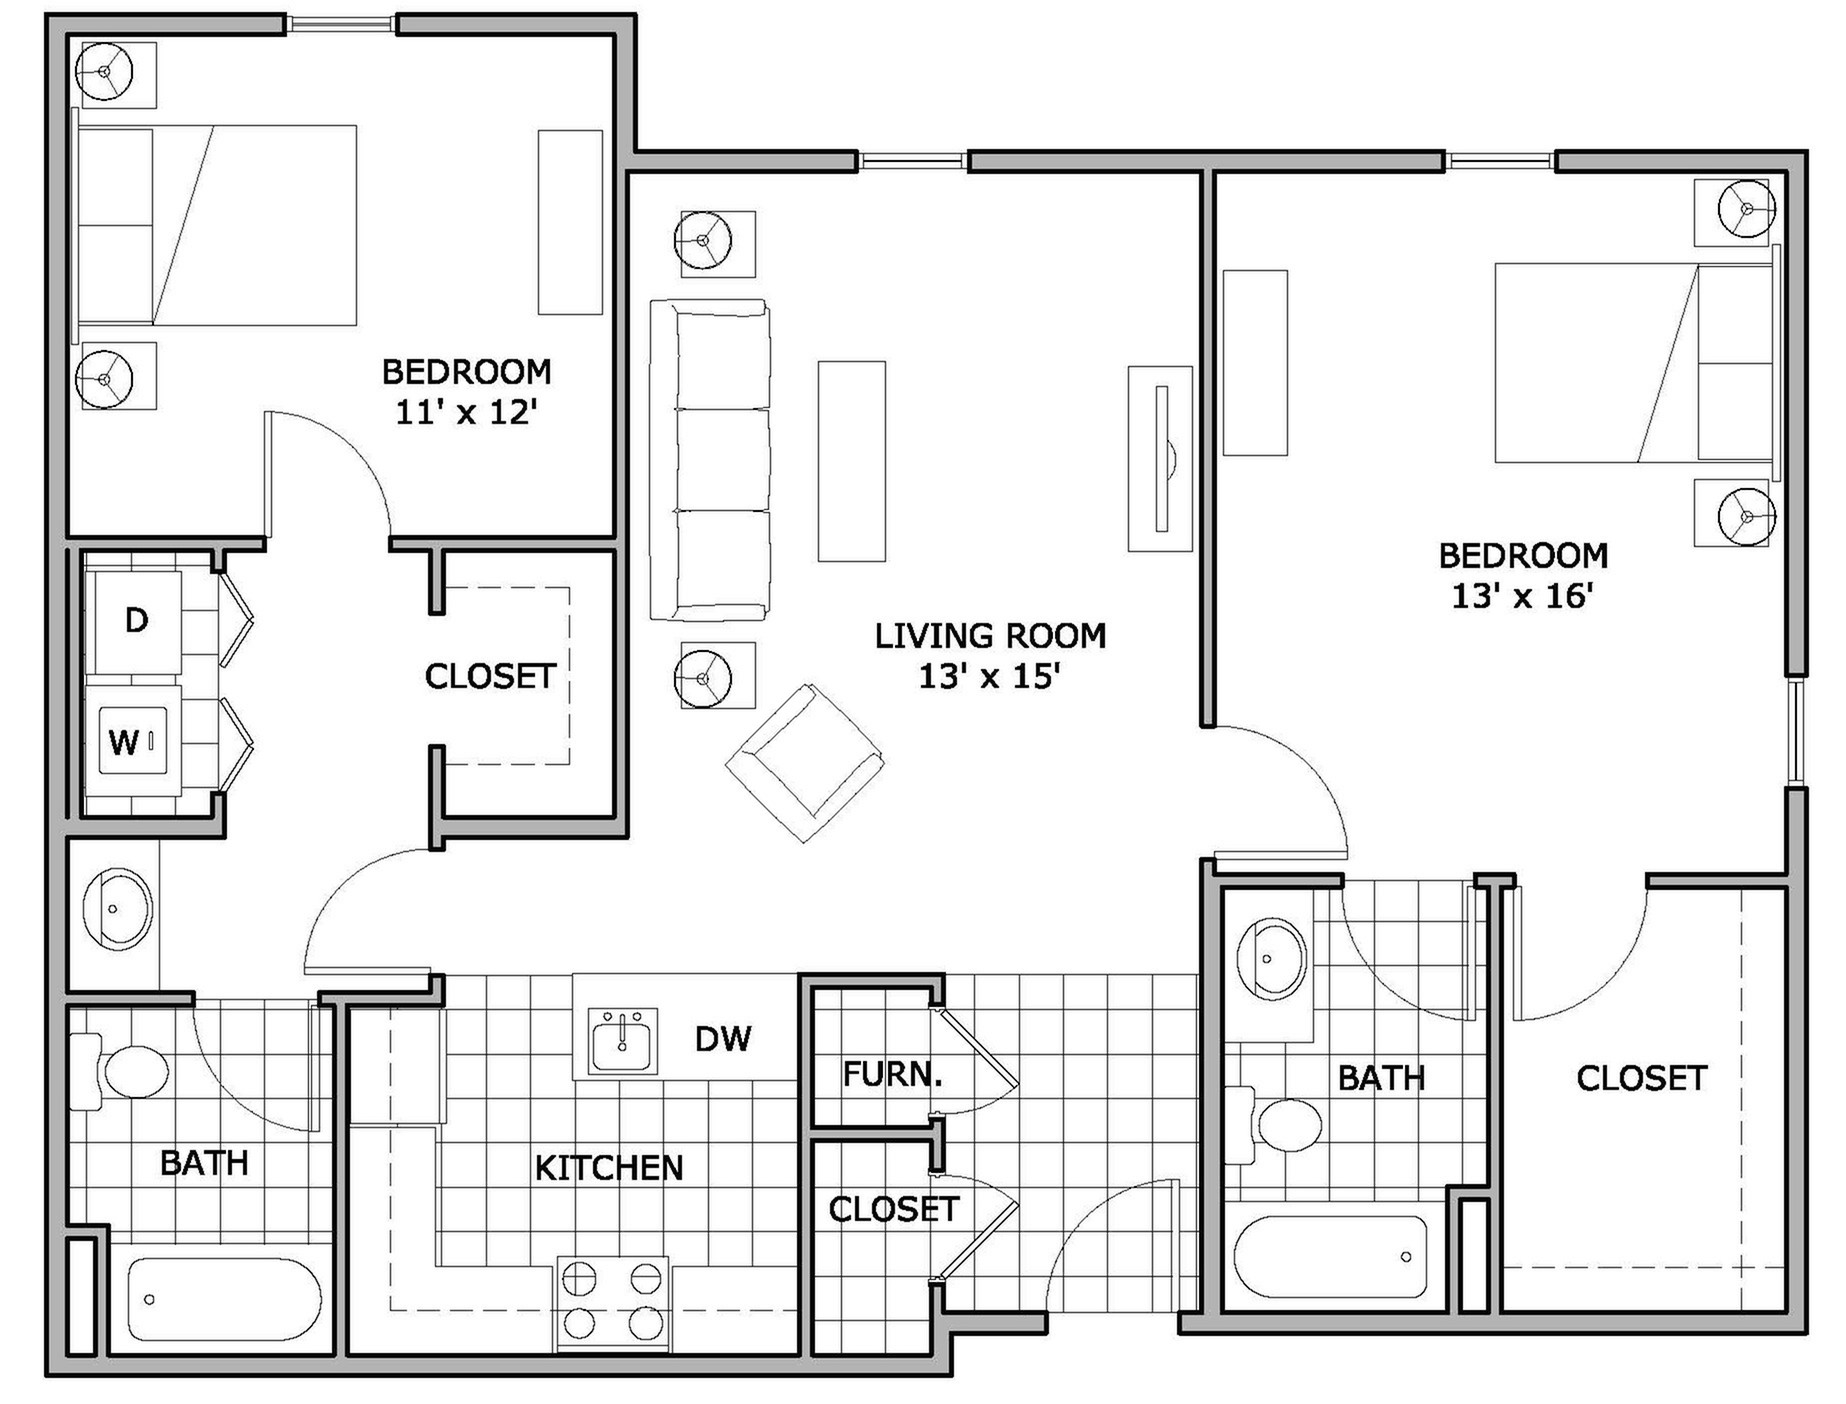 2 Bed / 2 Bath Apartment In Springfield MO